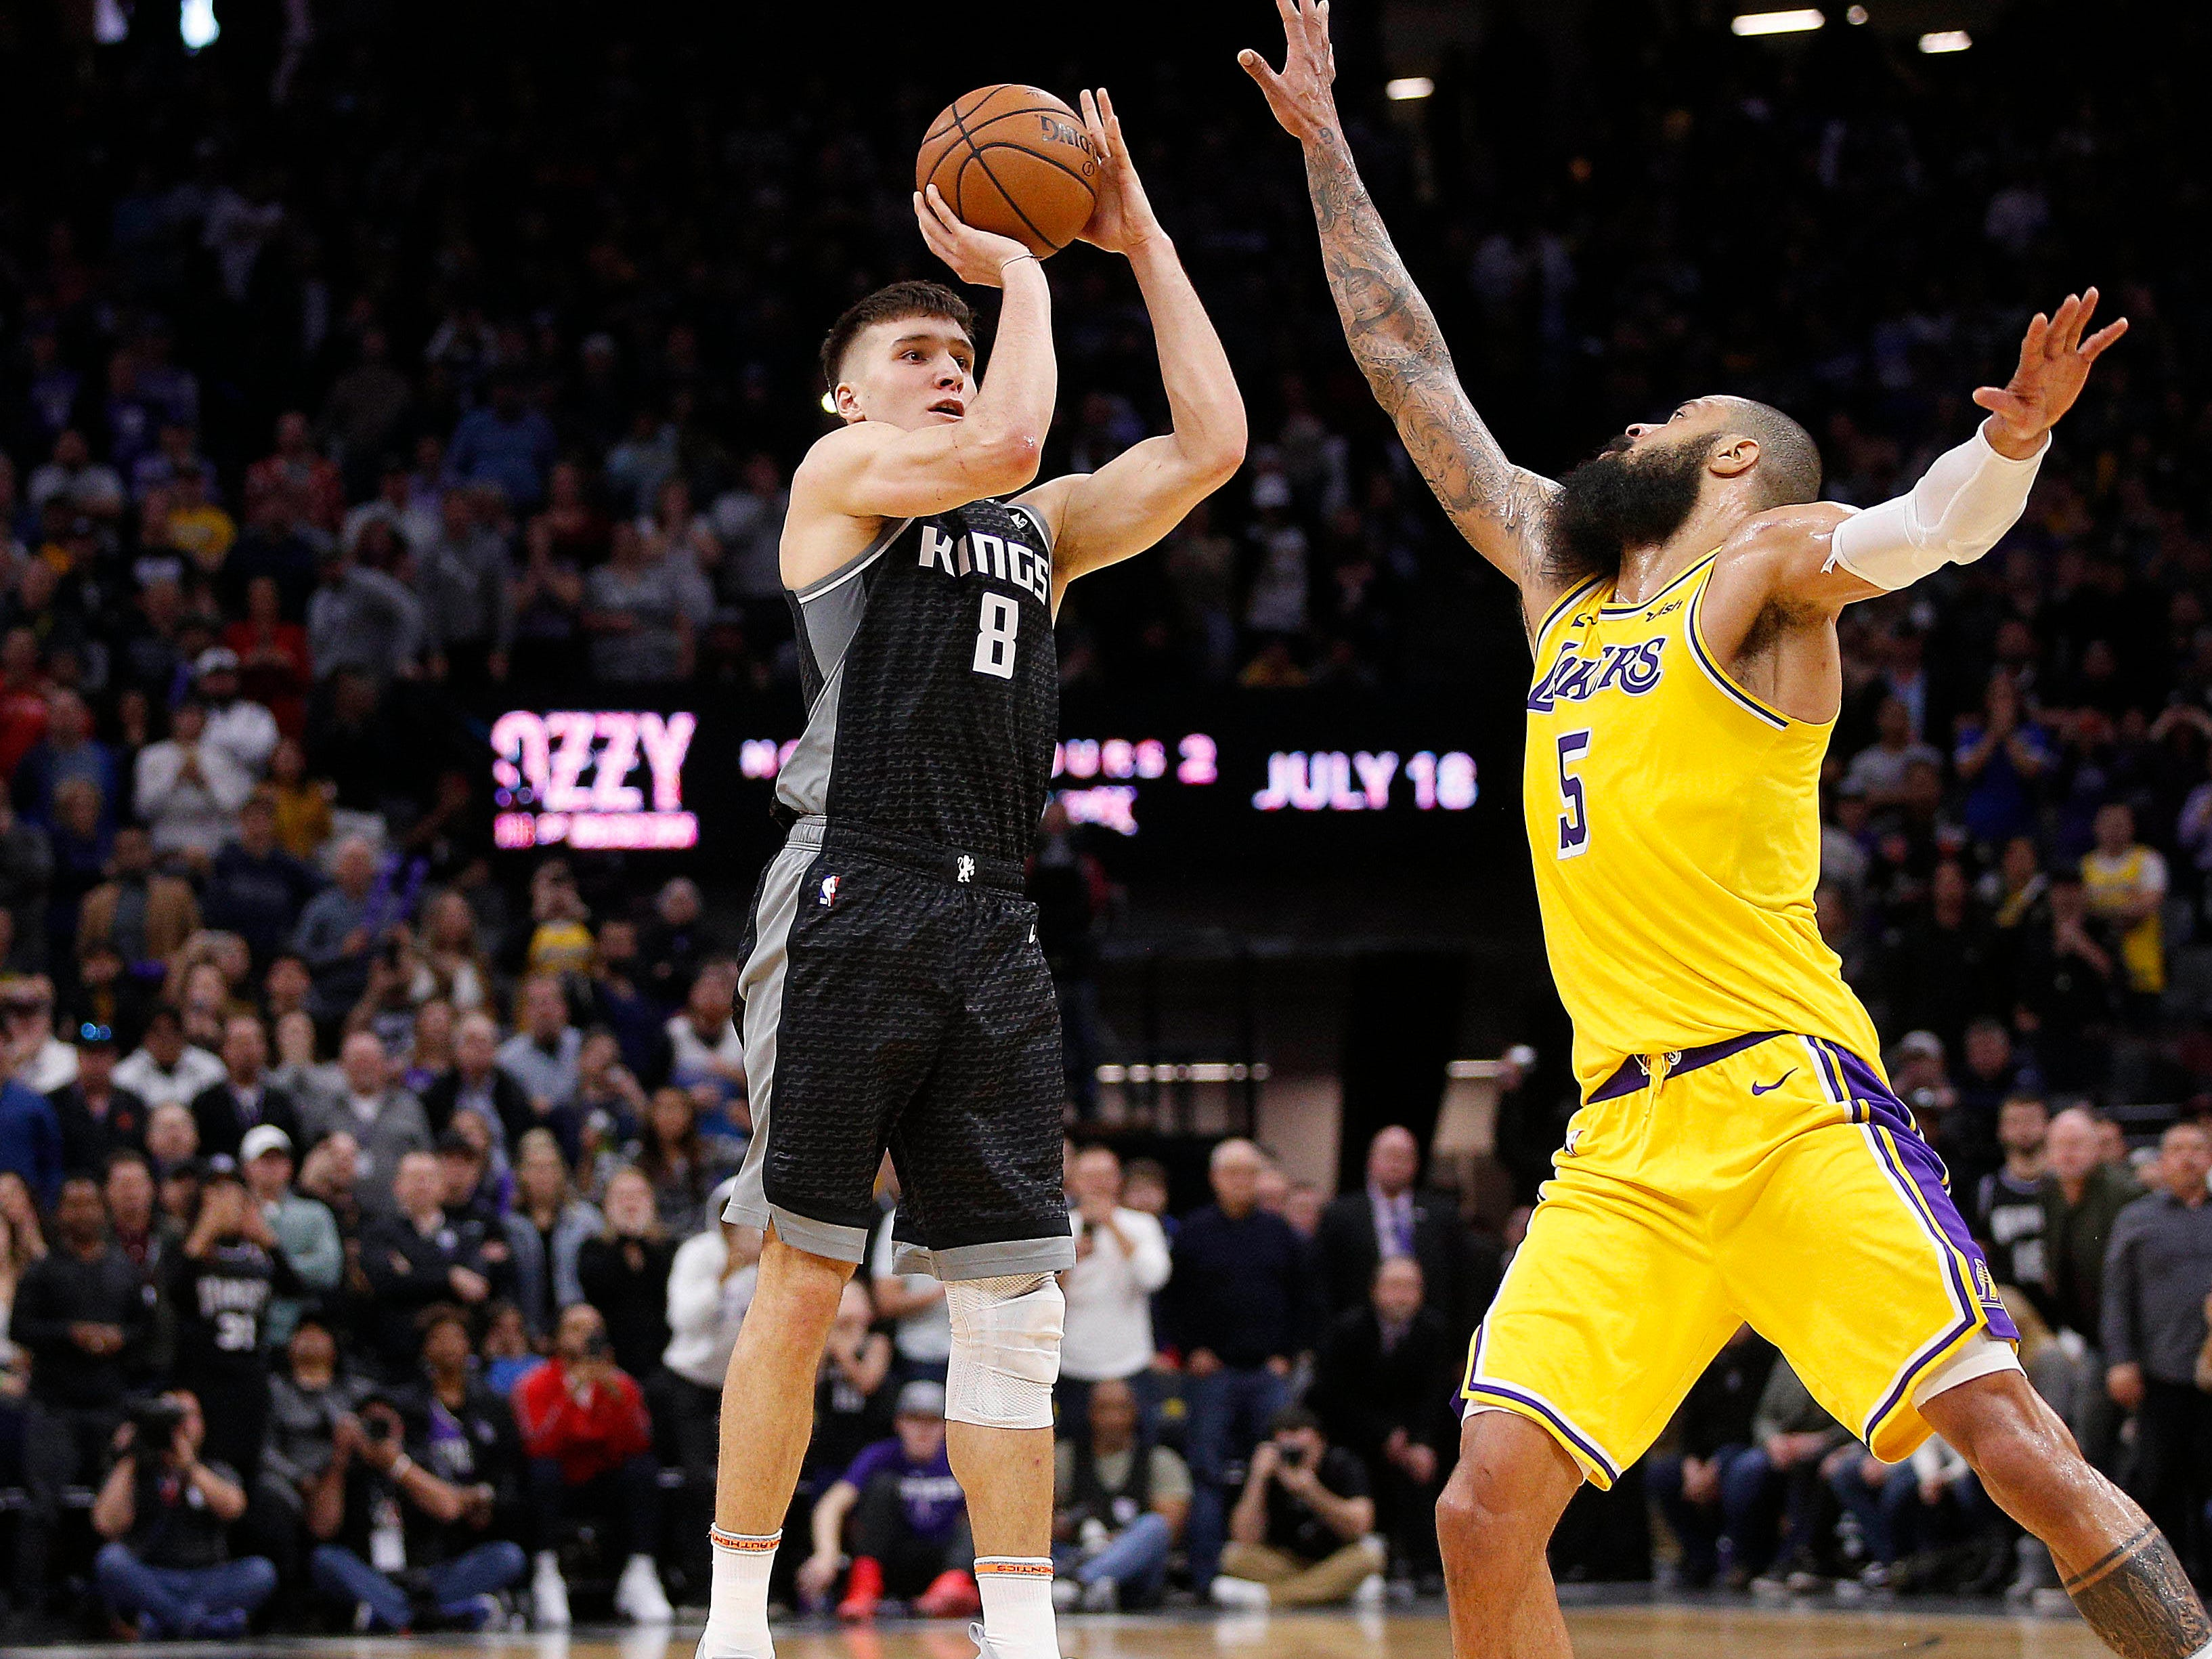 Dec. 27: Kings guard Bogdan Bogdanovic (8) puts up the game-winning 3 over Lakers center Tyson Chandler (5) at the buzzer in Sacramento.